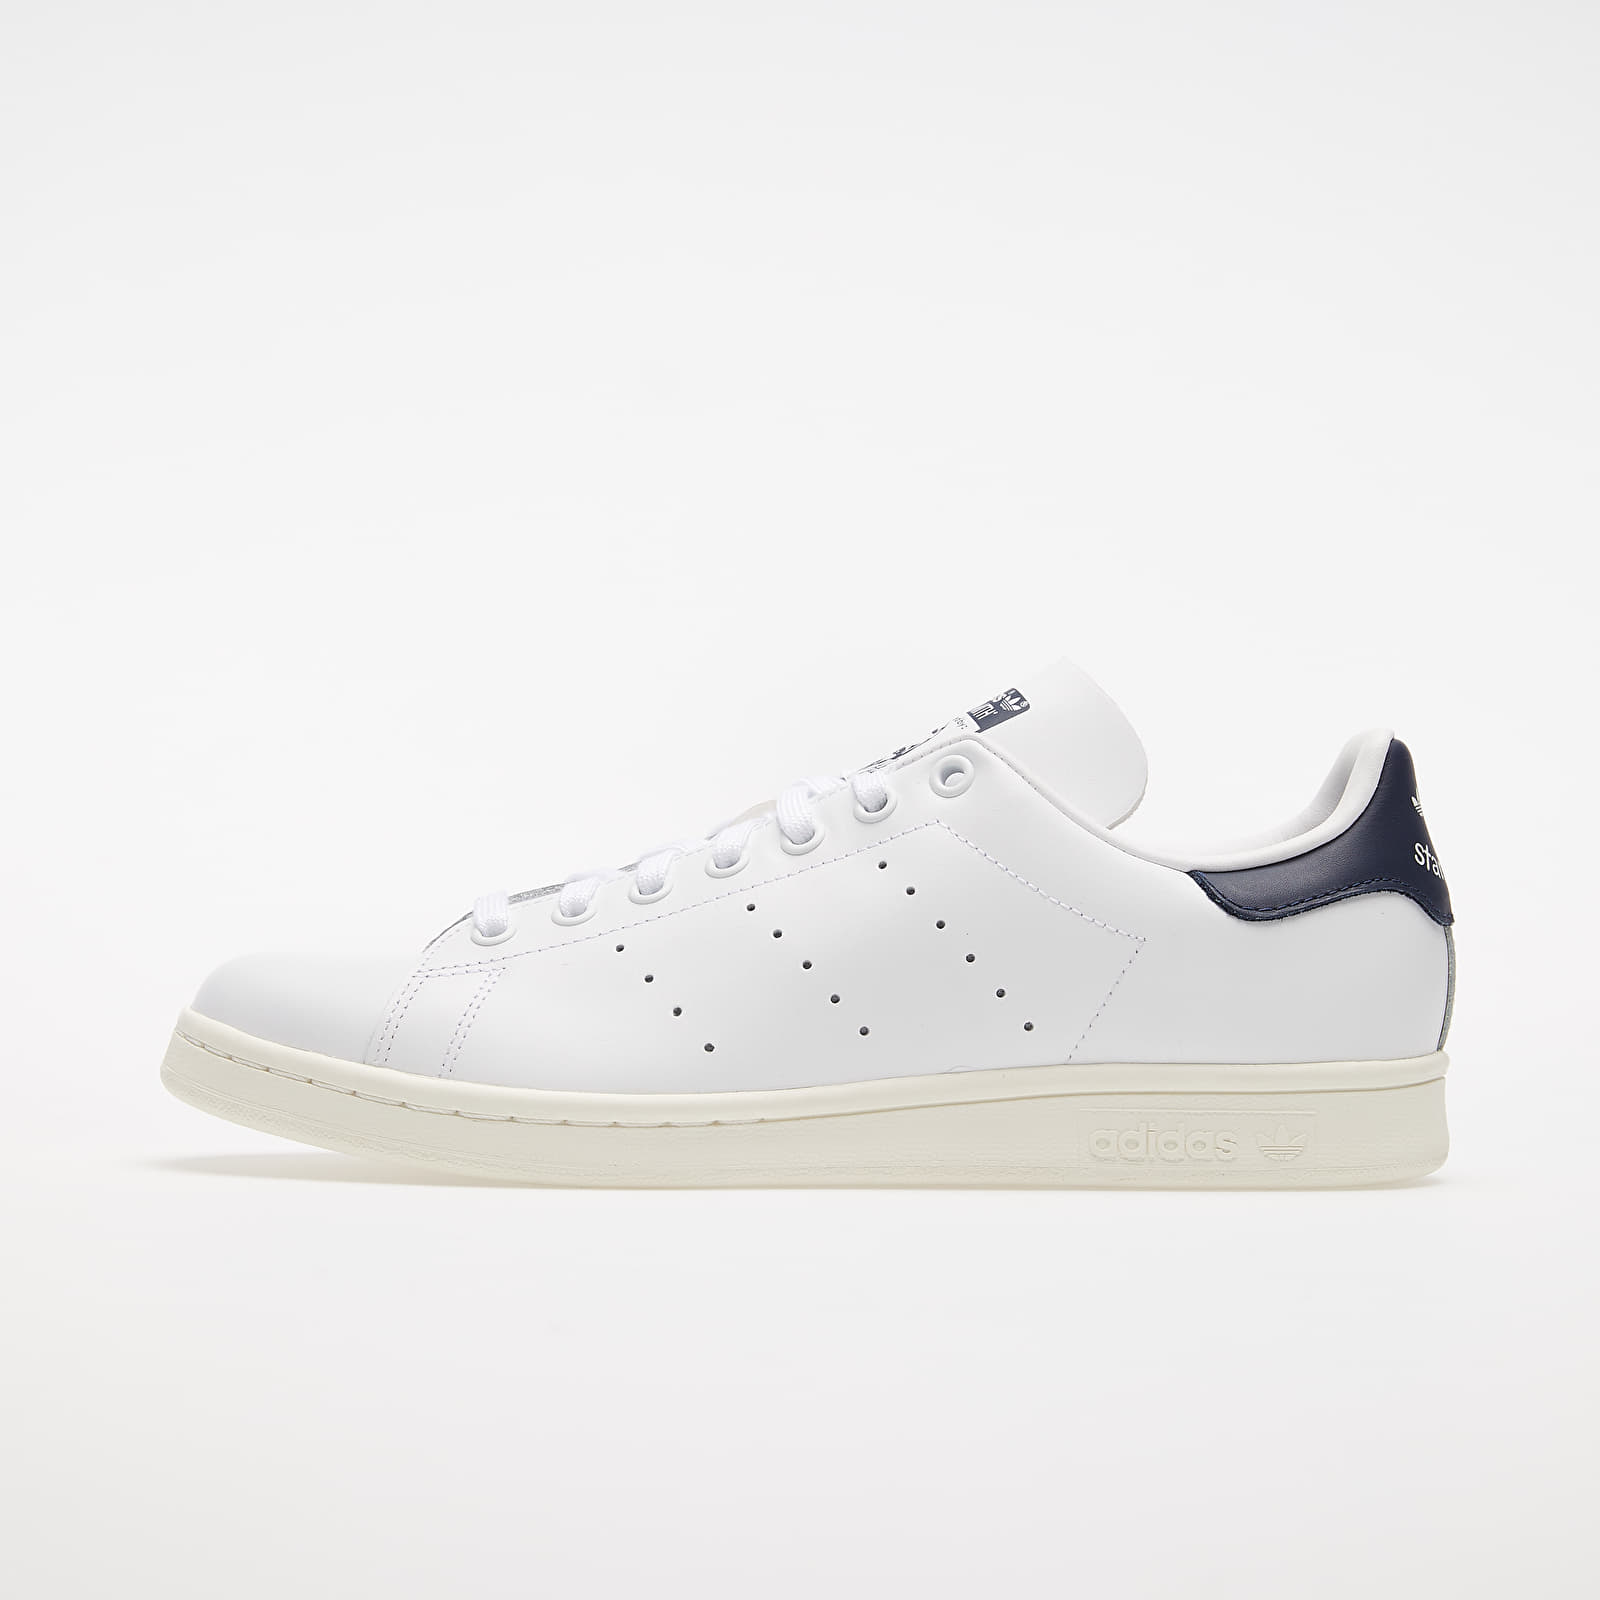 Chaussures et baskets homme adidas Stan Smith Ftw White/ Off White/ Collegiate Navy